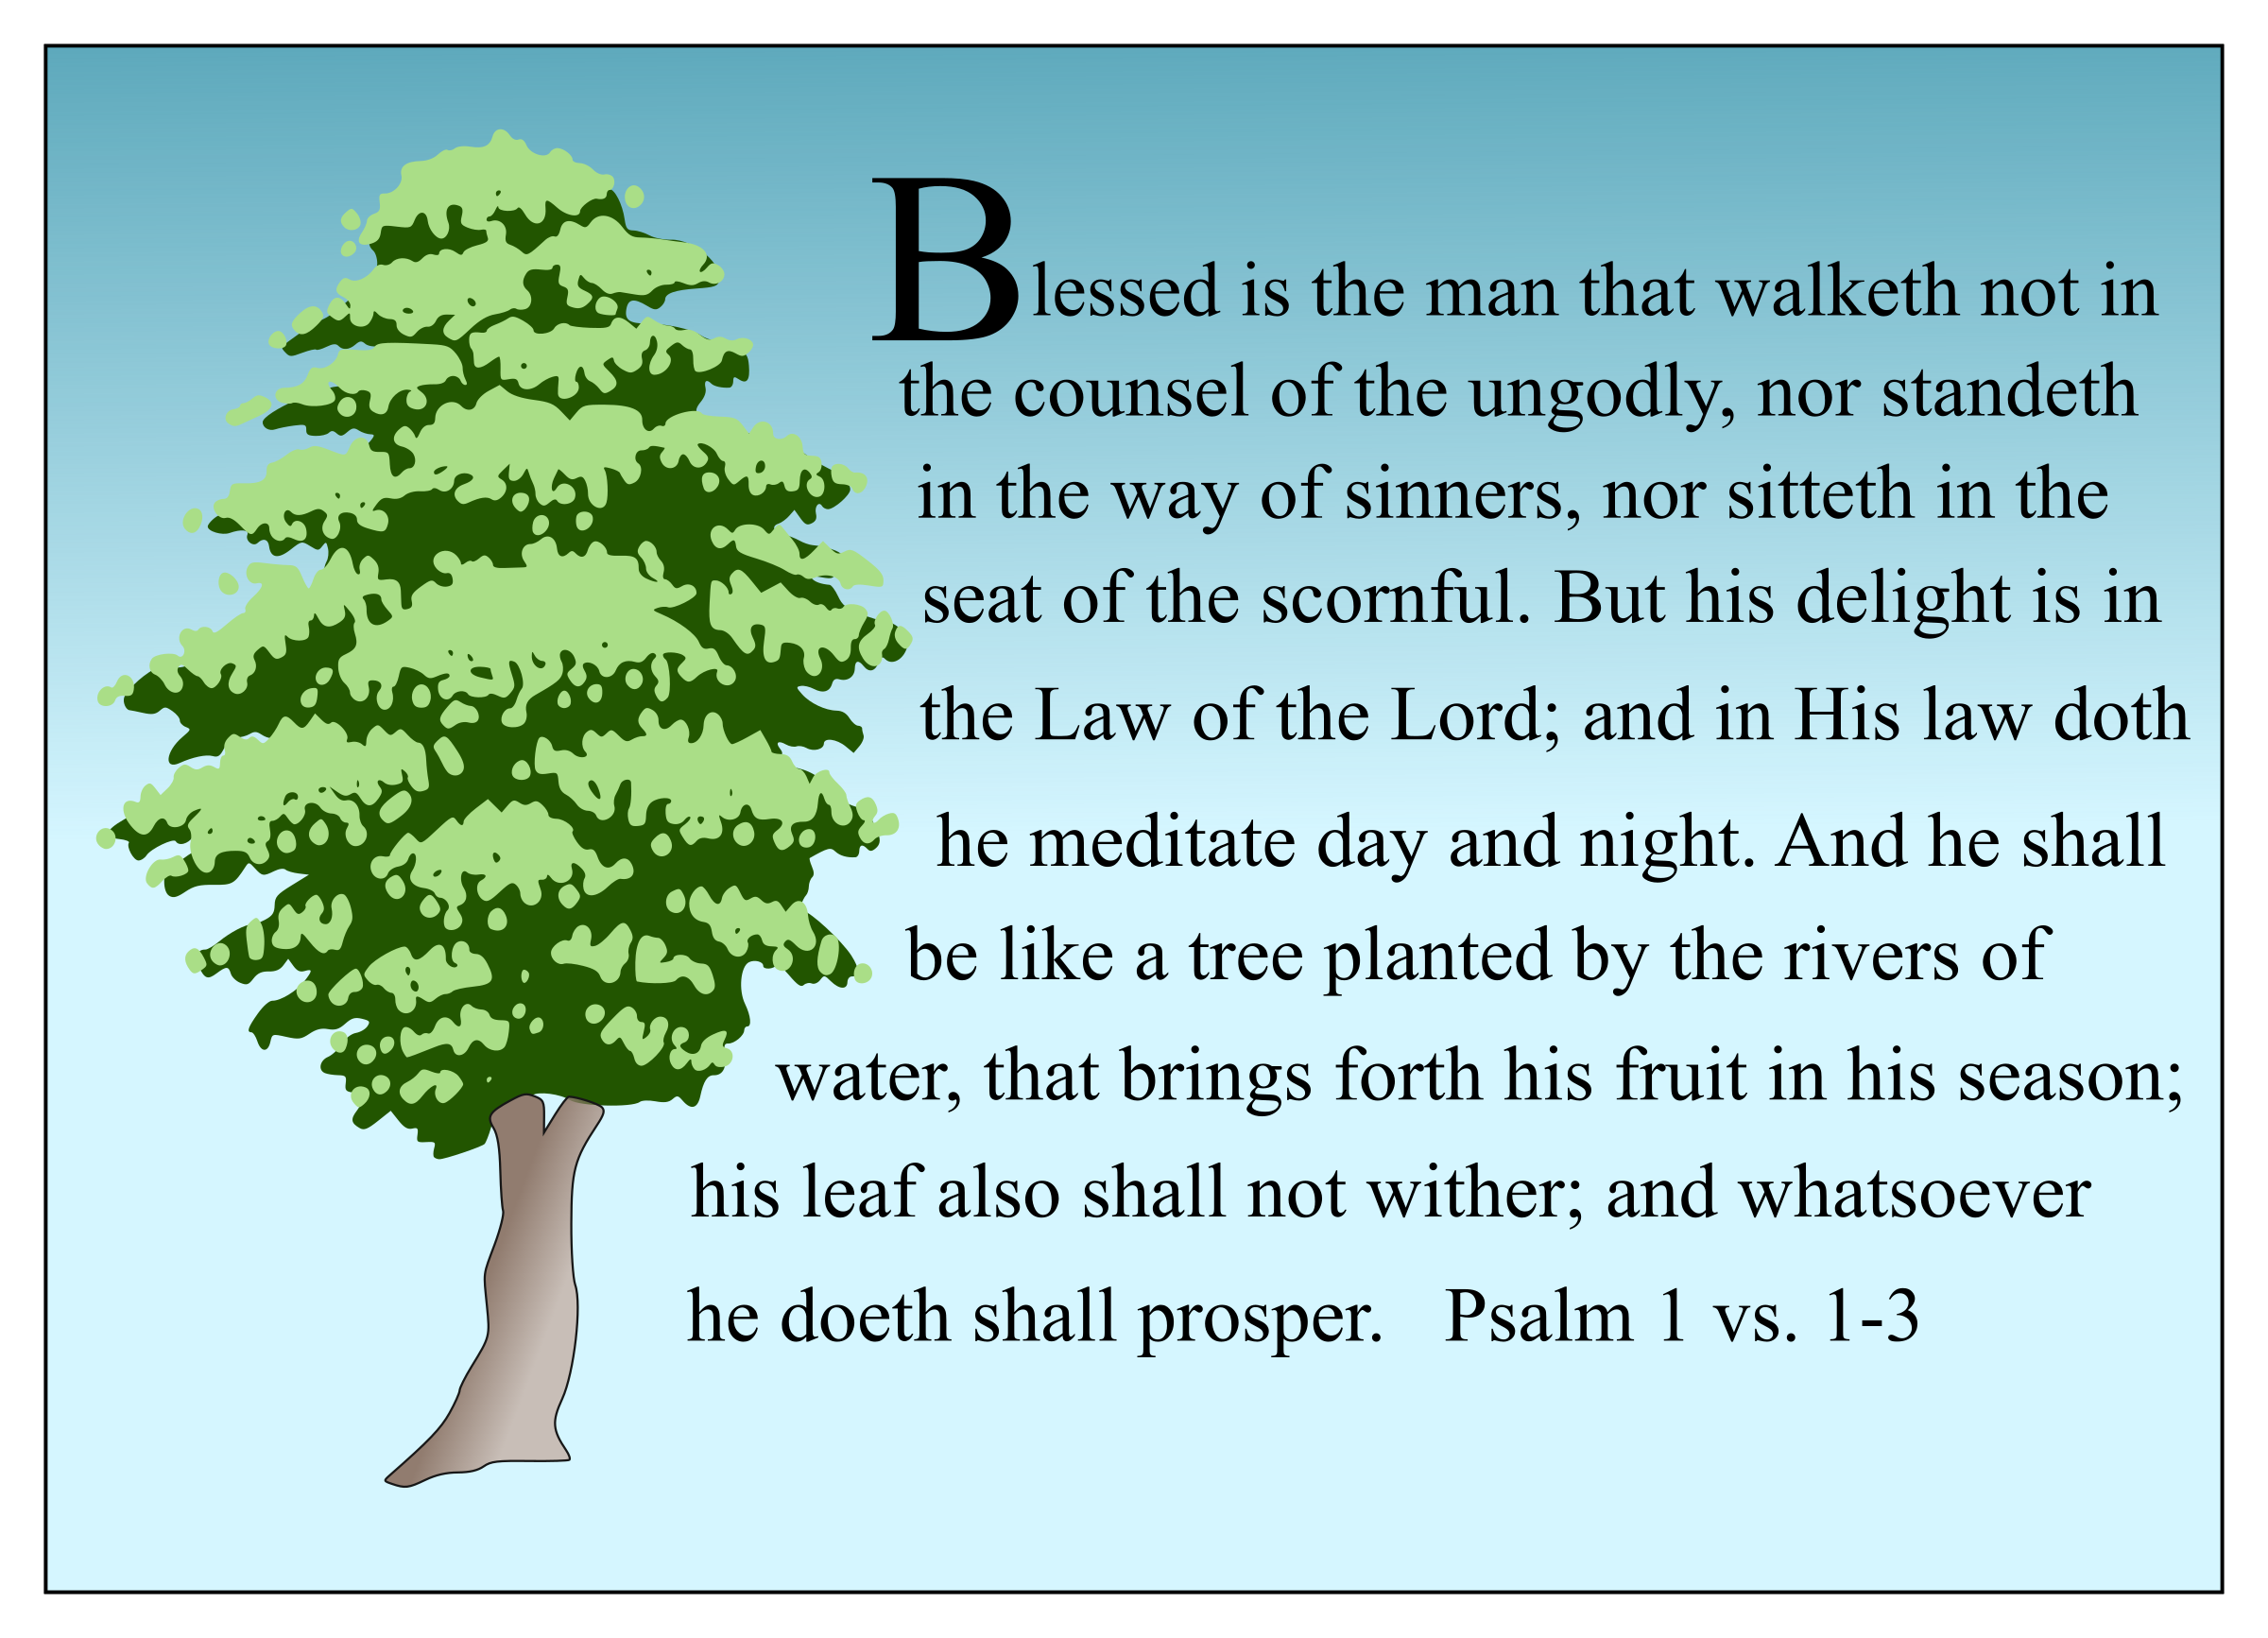 Tree & Psalm 1 by Raker Tooth